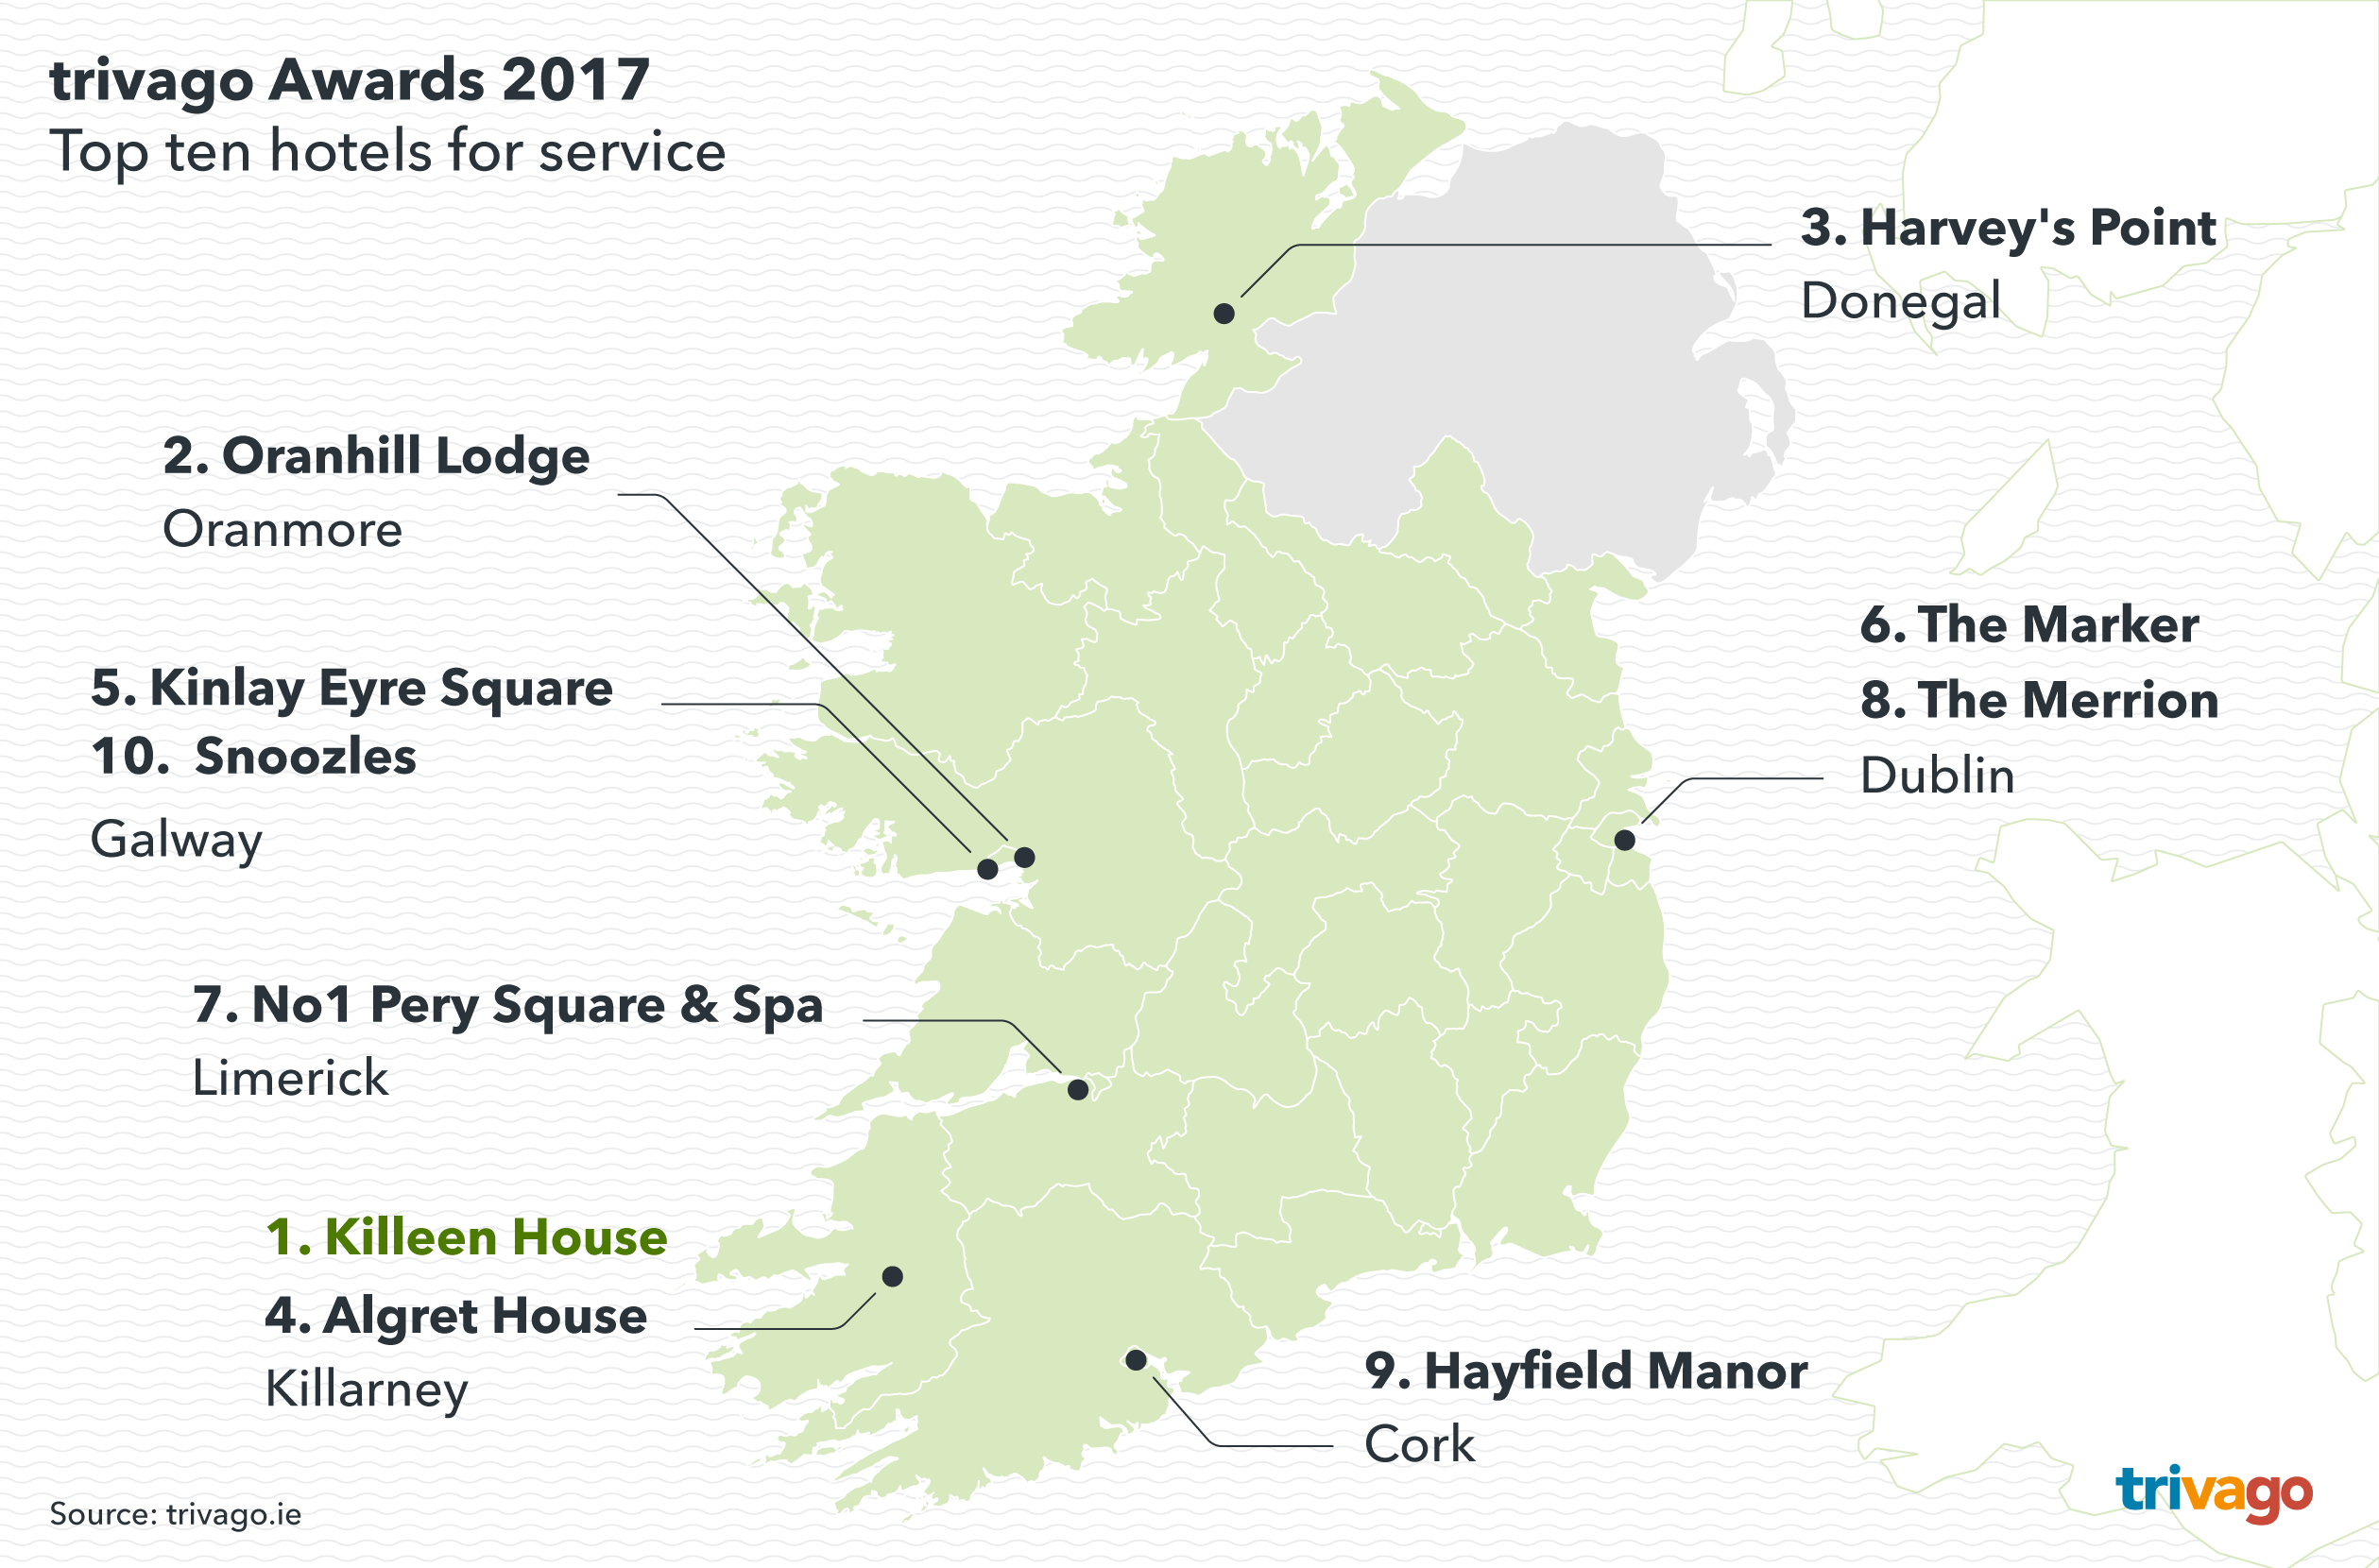 The Best Hotels In Ireland Have Been Announced In The 2017 Trivago